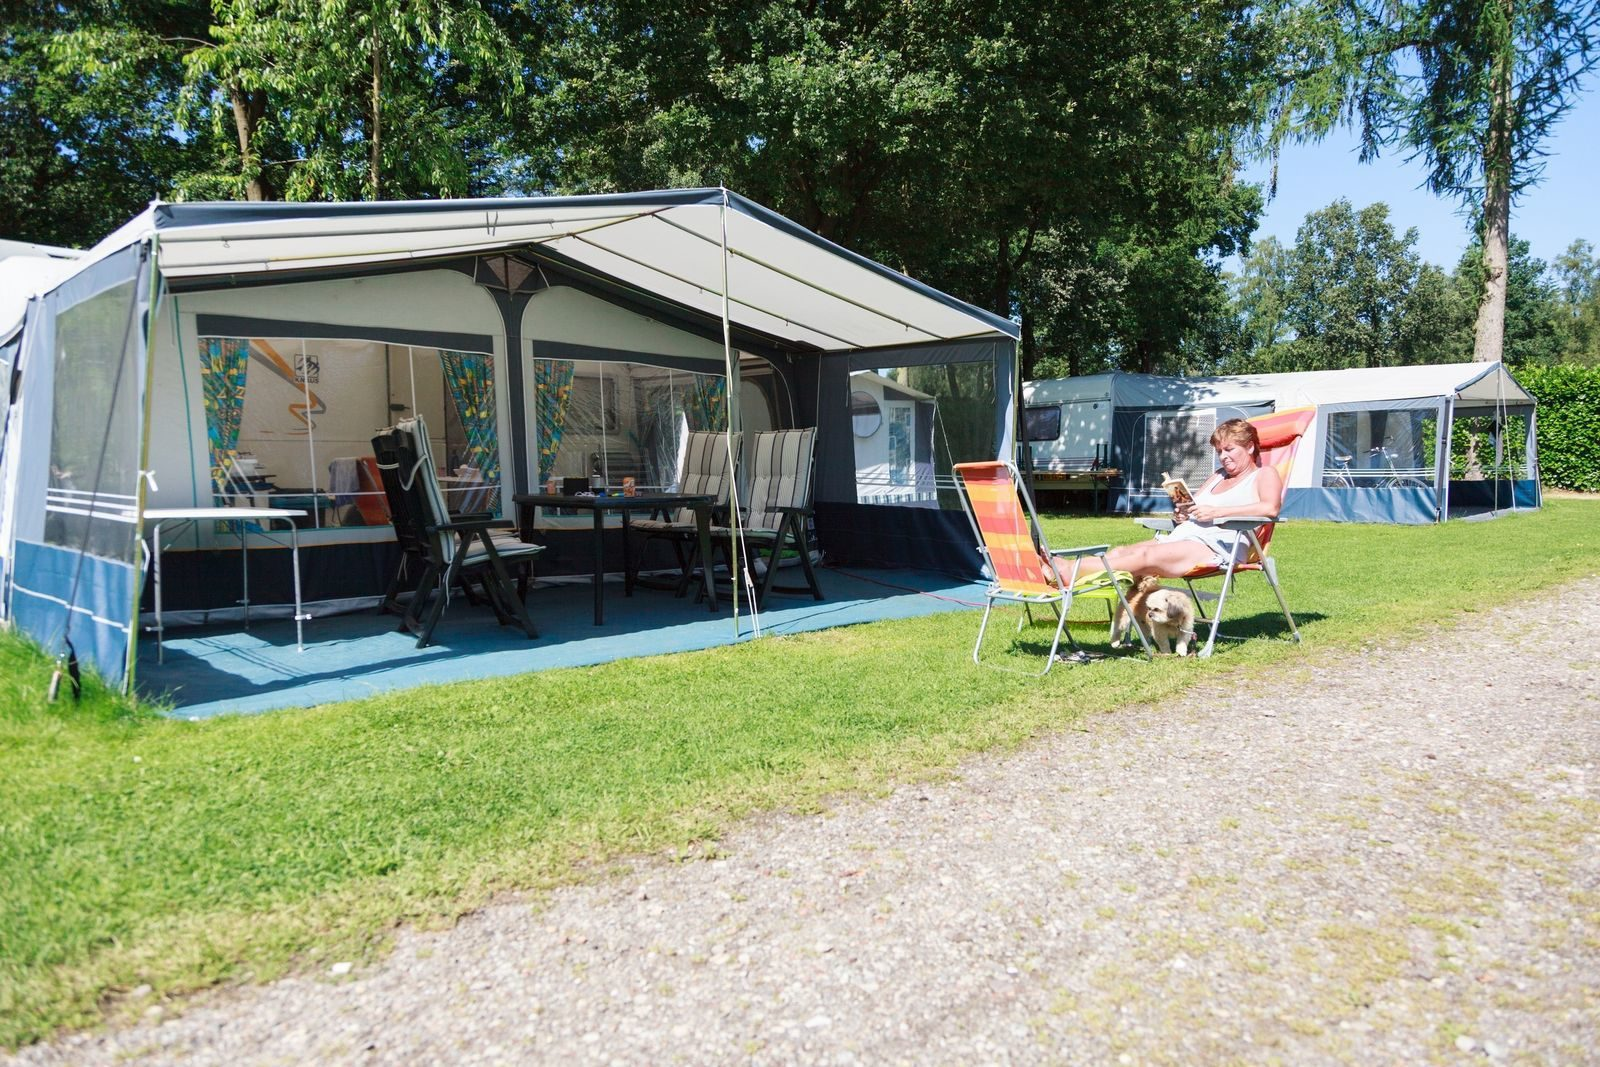 Camping TopParken